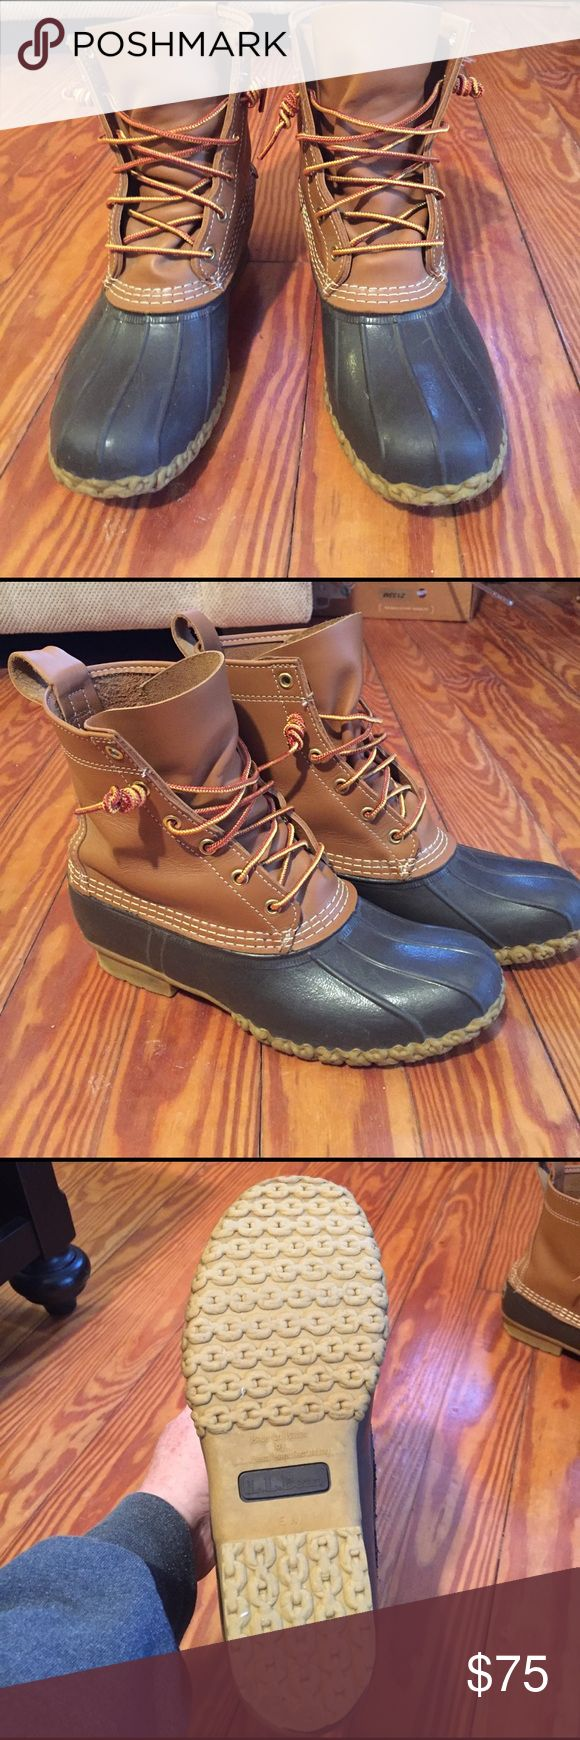 LL Bean boots Actually a men's 7 1/2 narrow. When I bought them they were sold out of women's 9's. the sales person recommended this as an alternative and they worked out great!  Worn only a handful of times.  Unlined. L.L. Bean Shoes Winter & Rain Boots